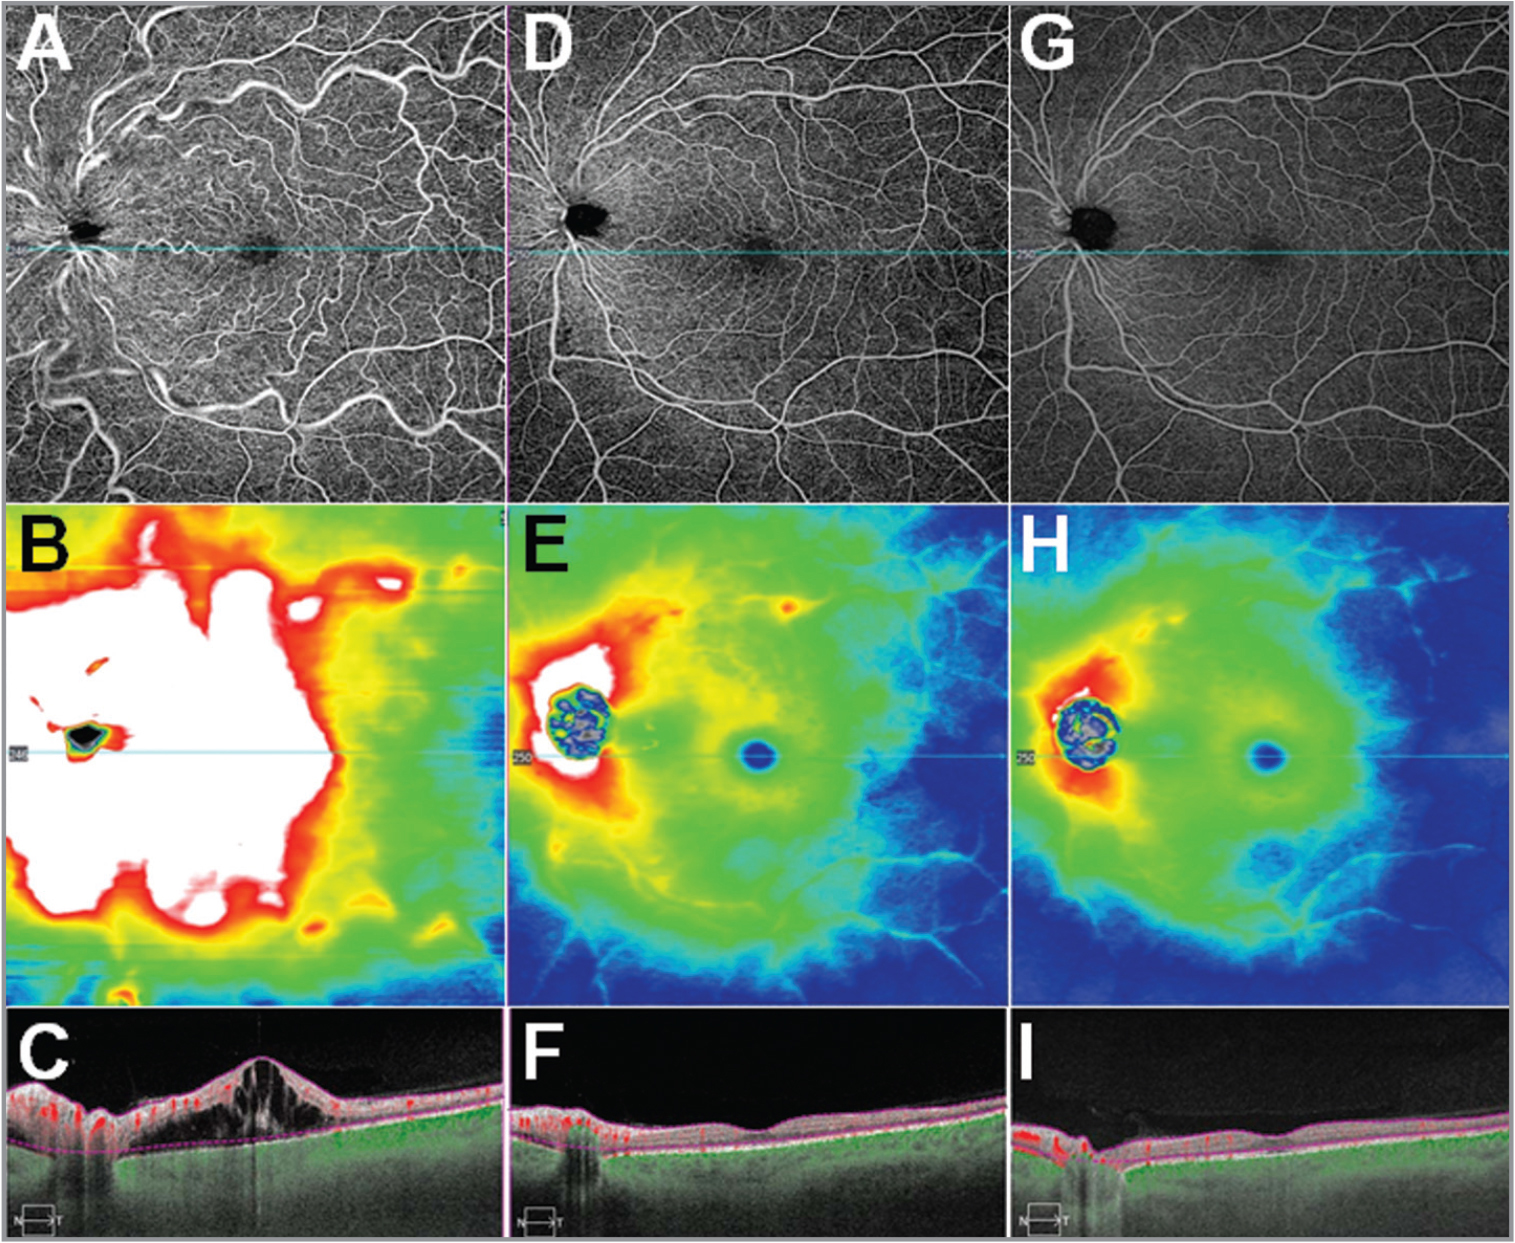 12 mm × 12 mm swept-source optical coherence tomography angiography images and total retinal thickness maps of the left eye at baseline and at follow-up visits. (A–C) Baseline visit. (D–F) Four weeks after one intravitreal steroid injection. The residual cotton-wool spot along the superior arcade can been seen in the retinal en face flow image and in the thickness map. (G–I) Five months after the intravitreal injection. (A, D, G) Total retina en face flow image. (B, E, H) Total retinal thickness map. (C, F, I) B-scans through the fovea with dashed purple boundaries representing the boundaries for the en face images shown. Flow above the retinal pigment epithelium (RPE) is depicted in red and flow below the RPE is depicted as green.